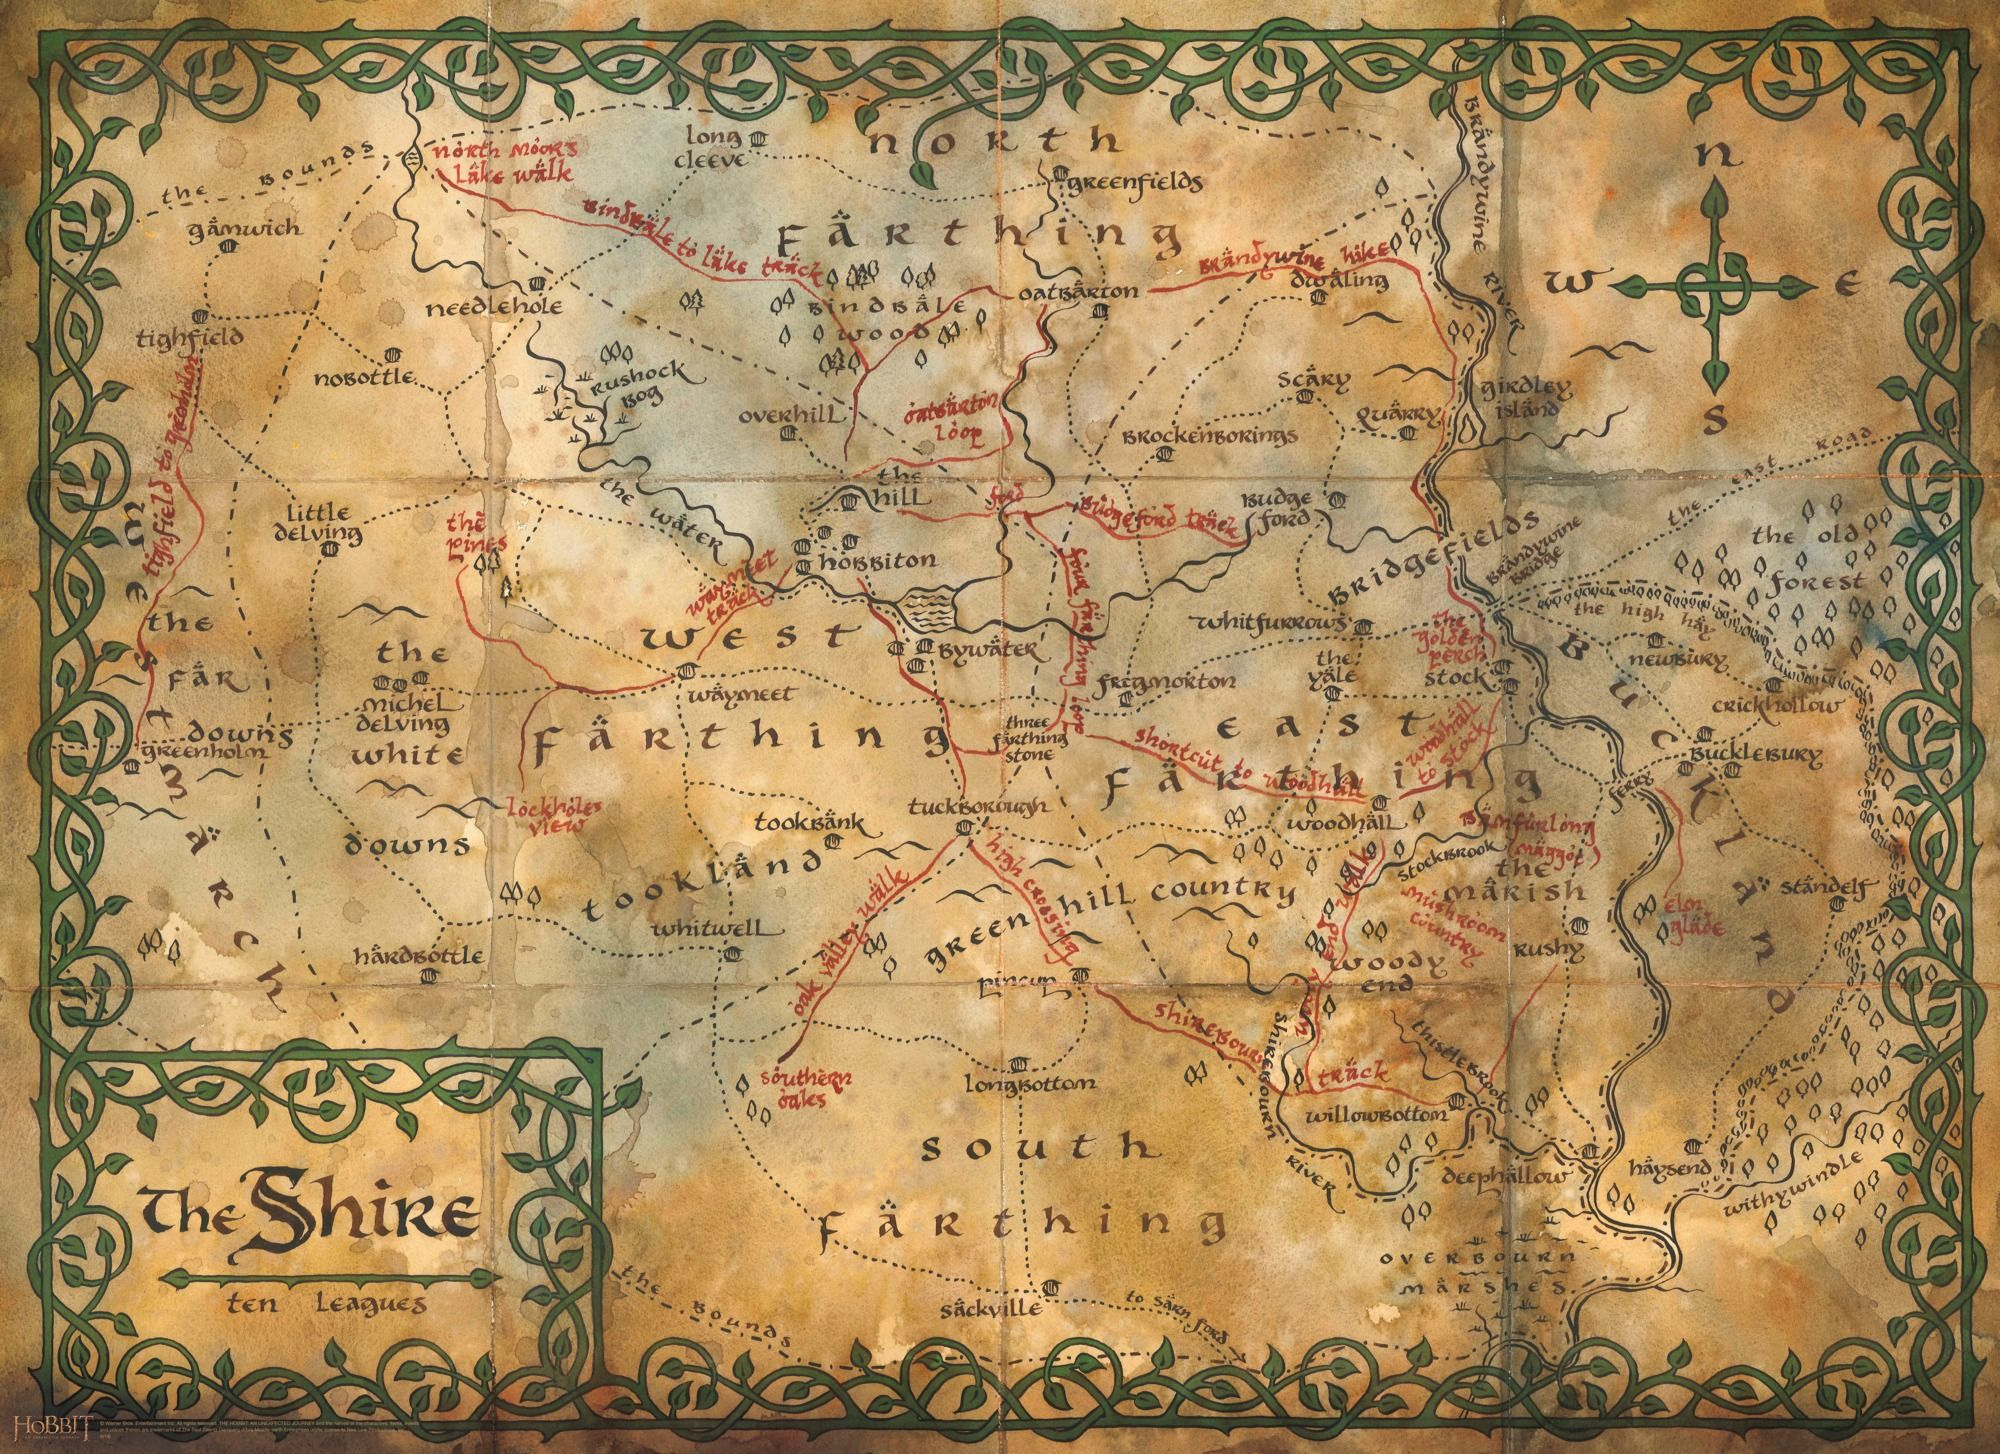 Hobbit Map Wallpaper Map of the shire, middle earth | Decorating